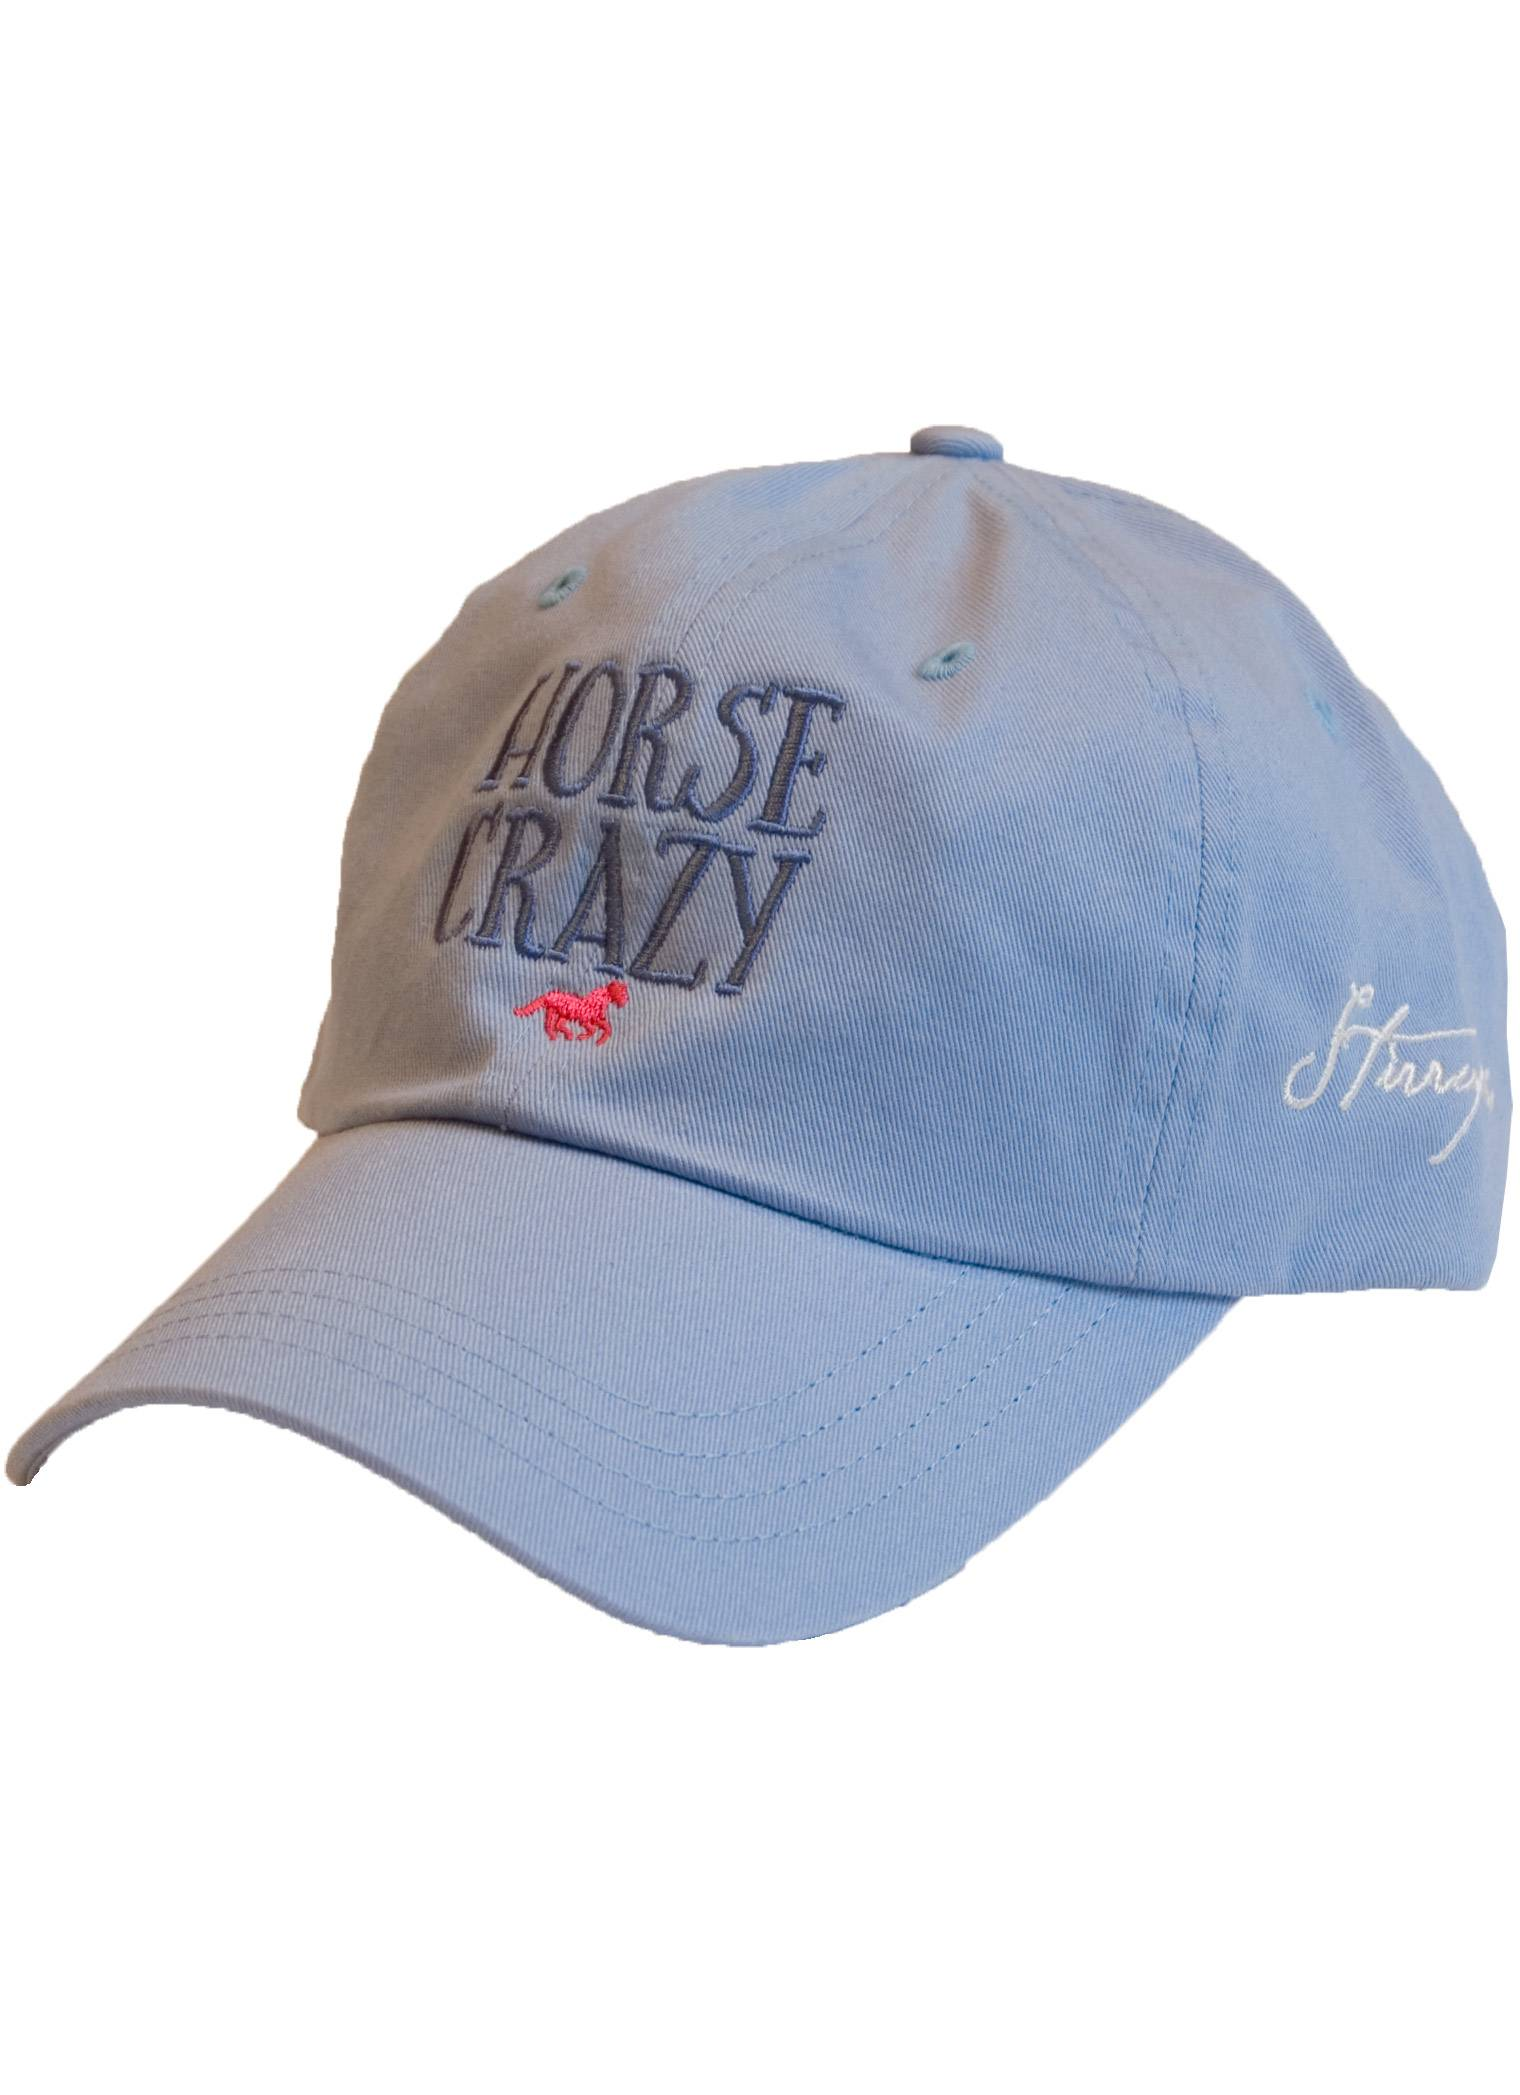 Stirrups Horse Crazy Garment Washed Cap- Ladies